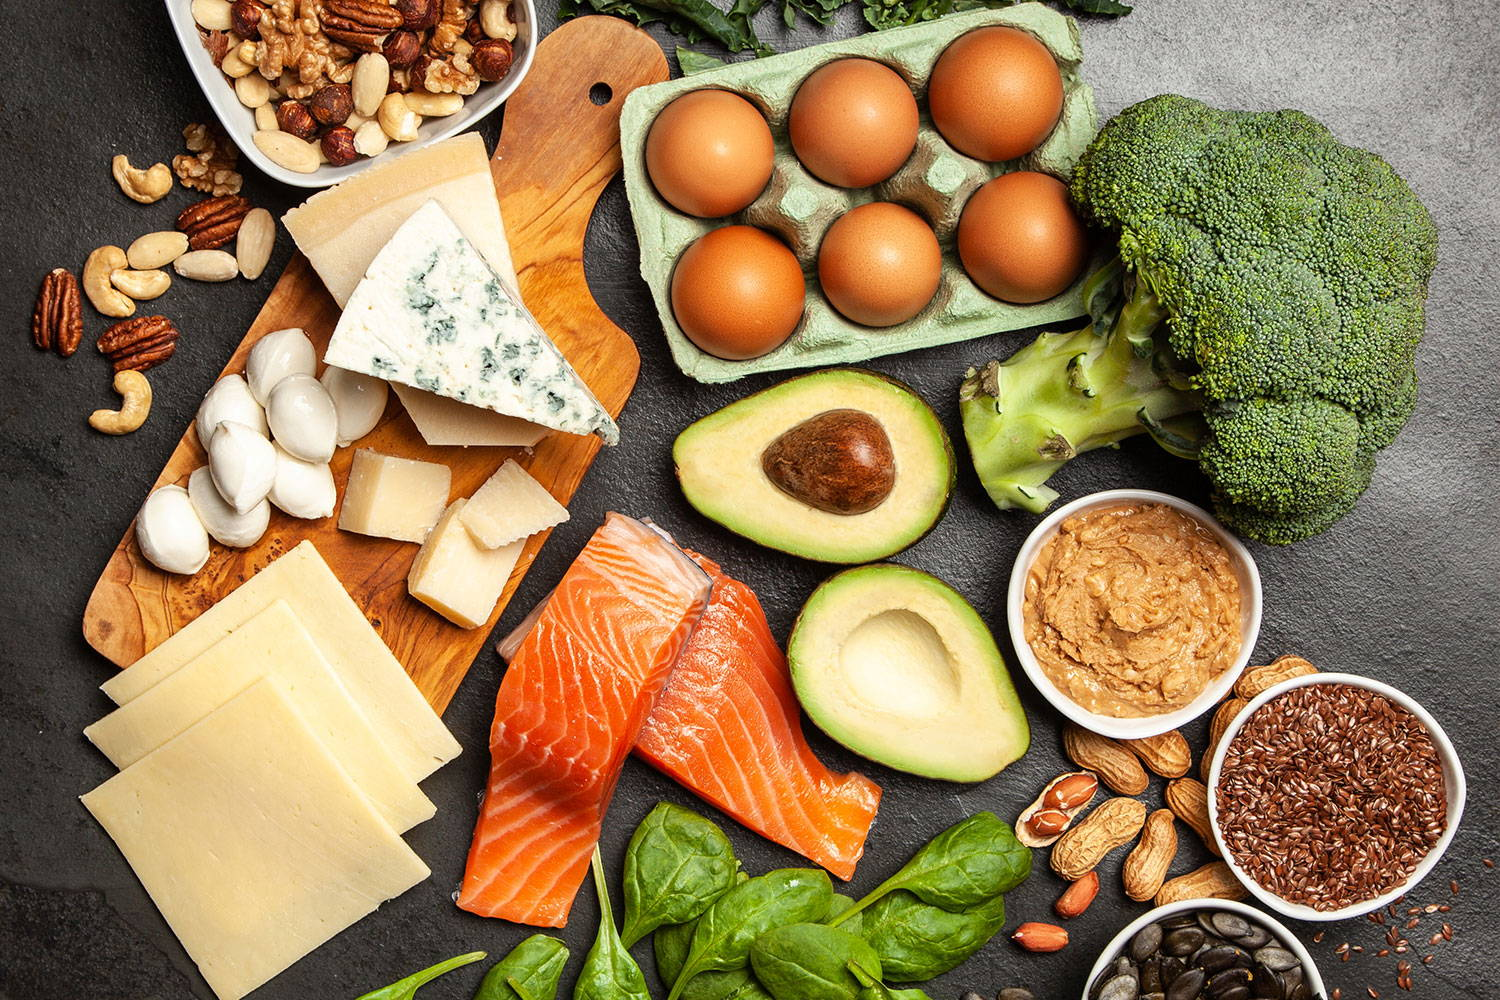 How To Make The Atkins Diet Work For You